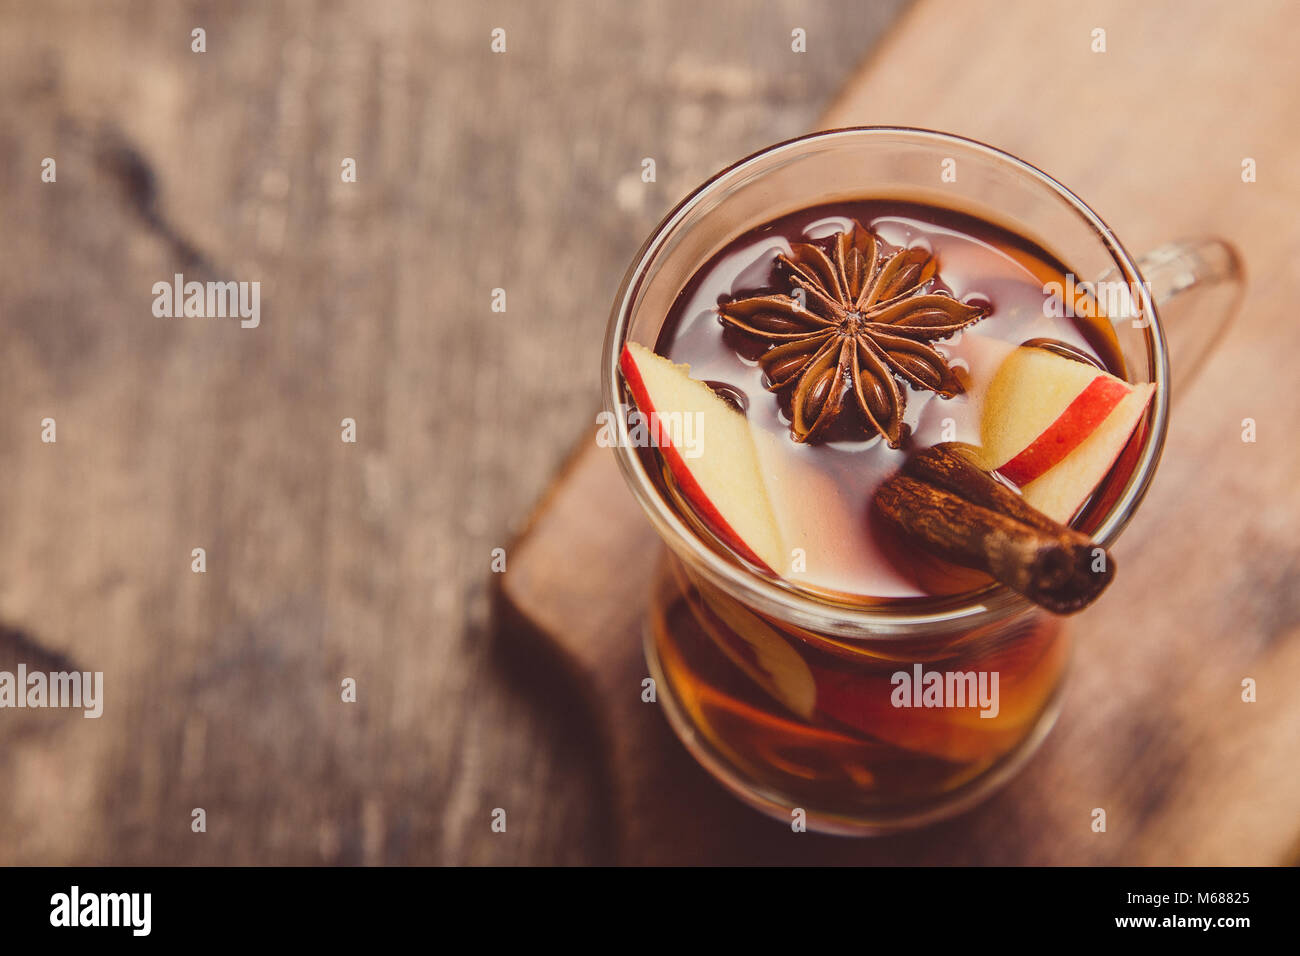 hot spicy beverage. Hot drink (apple tea, punch) with cinnamon stick and star anise. Seasonal mulled drink. - Stock Image